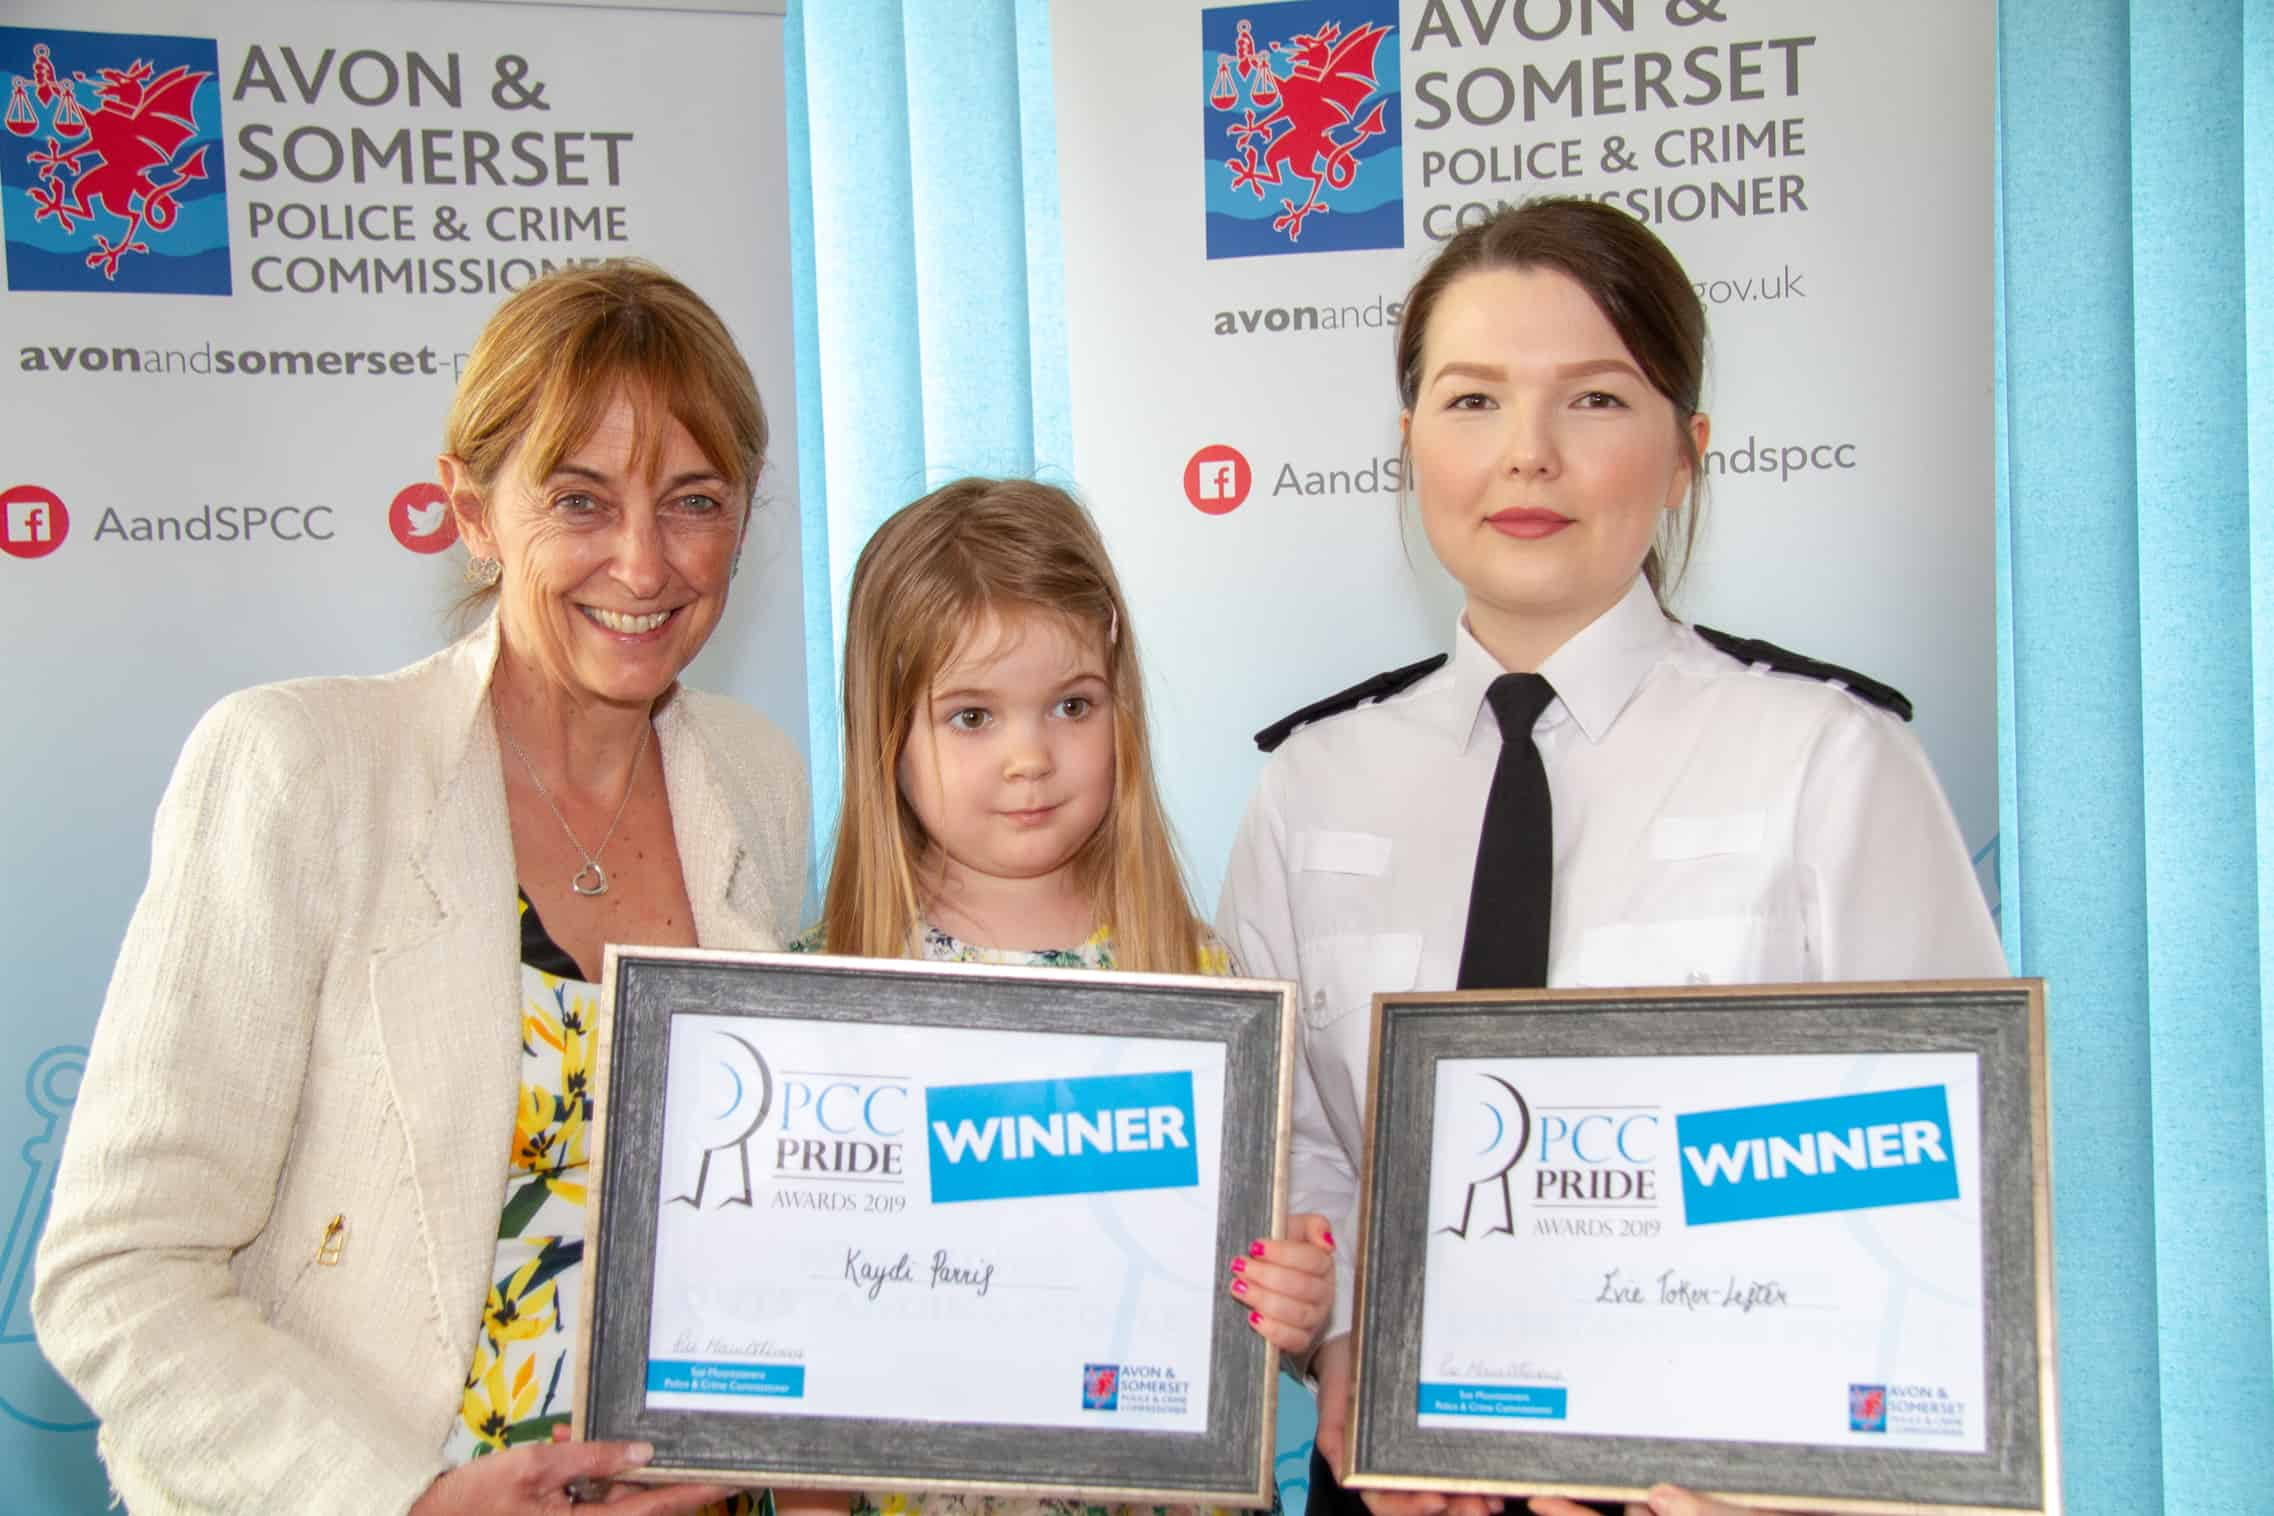 Four-year-old who helped save her mum's life recognised at Pride Awards